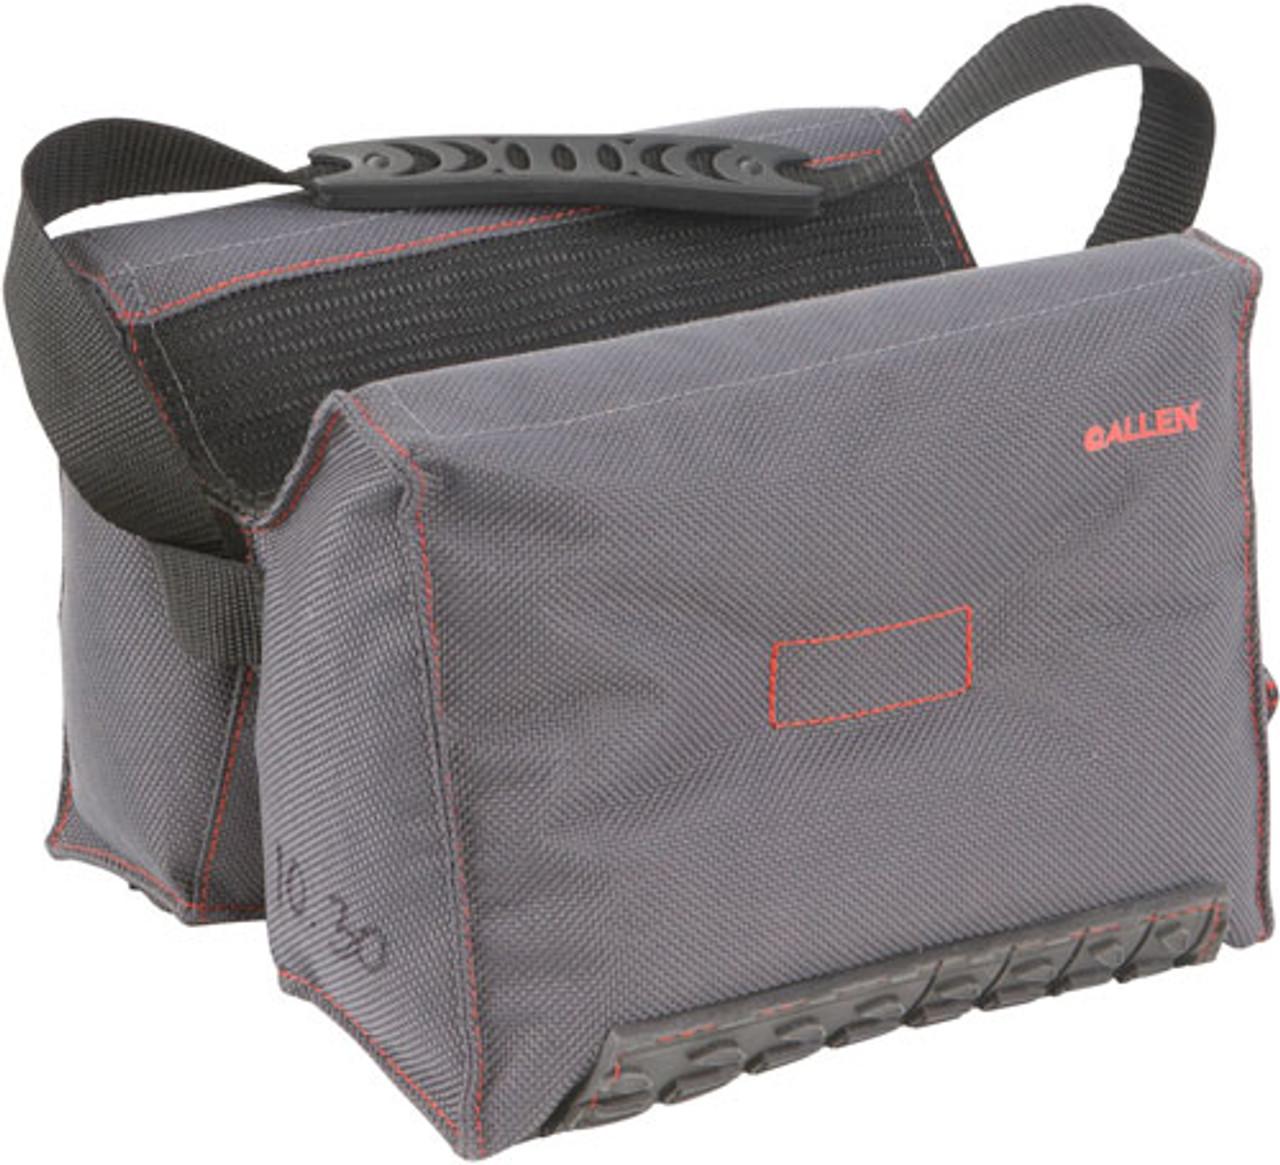 a60d119ccbaf Allen Thermoblock Precision Shooting Bag Filled Blk Gray 26509027539